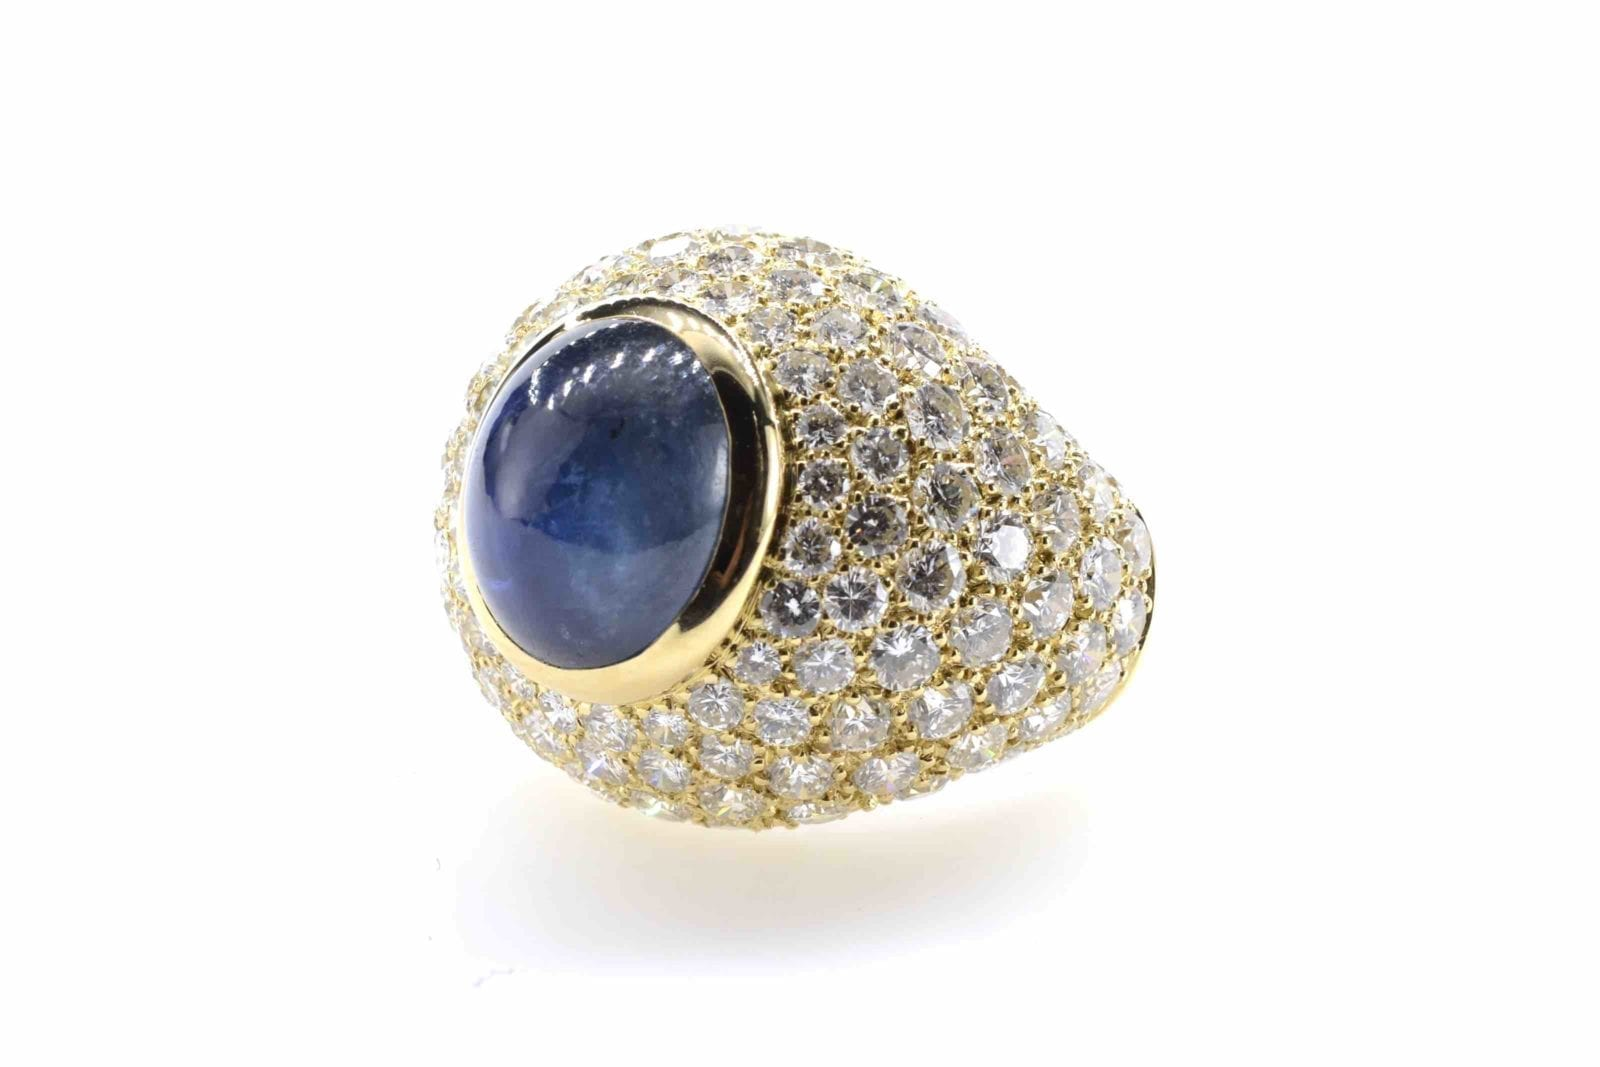 Bague dôme saphir et diamants en or jaune 18k